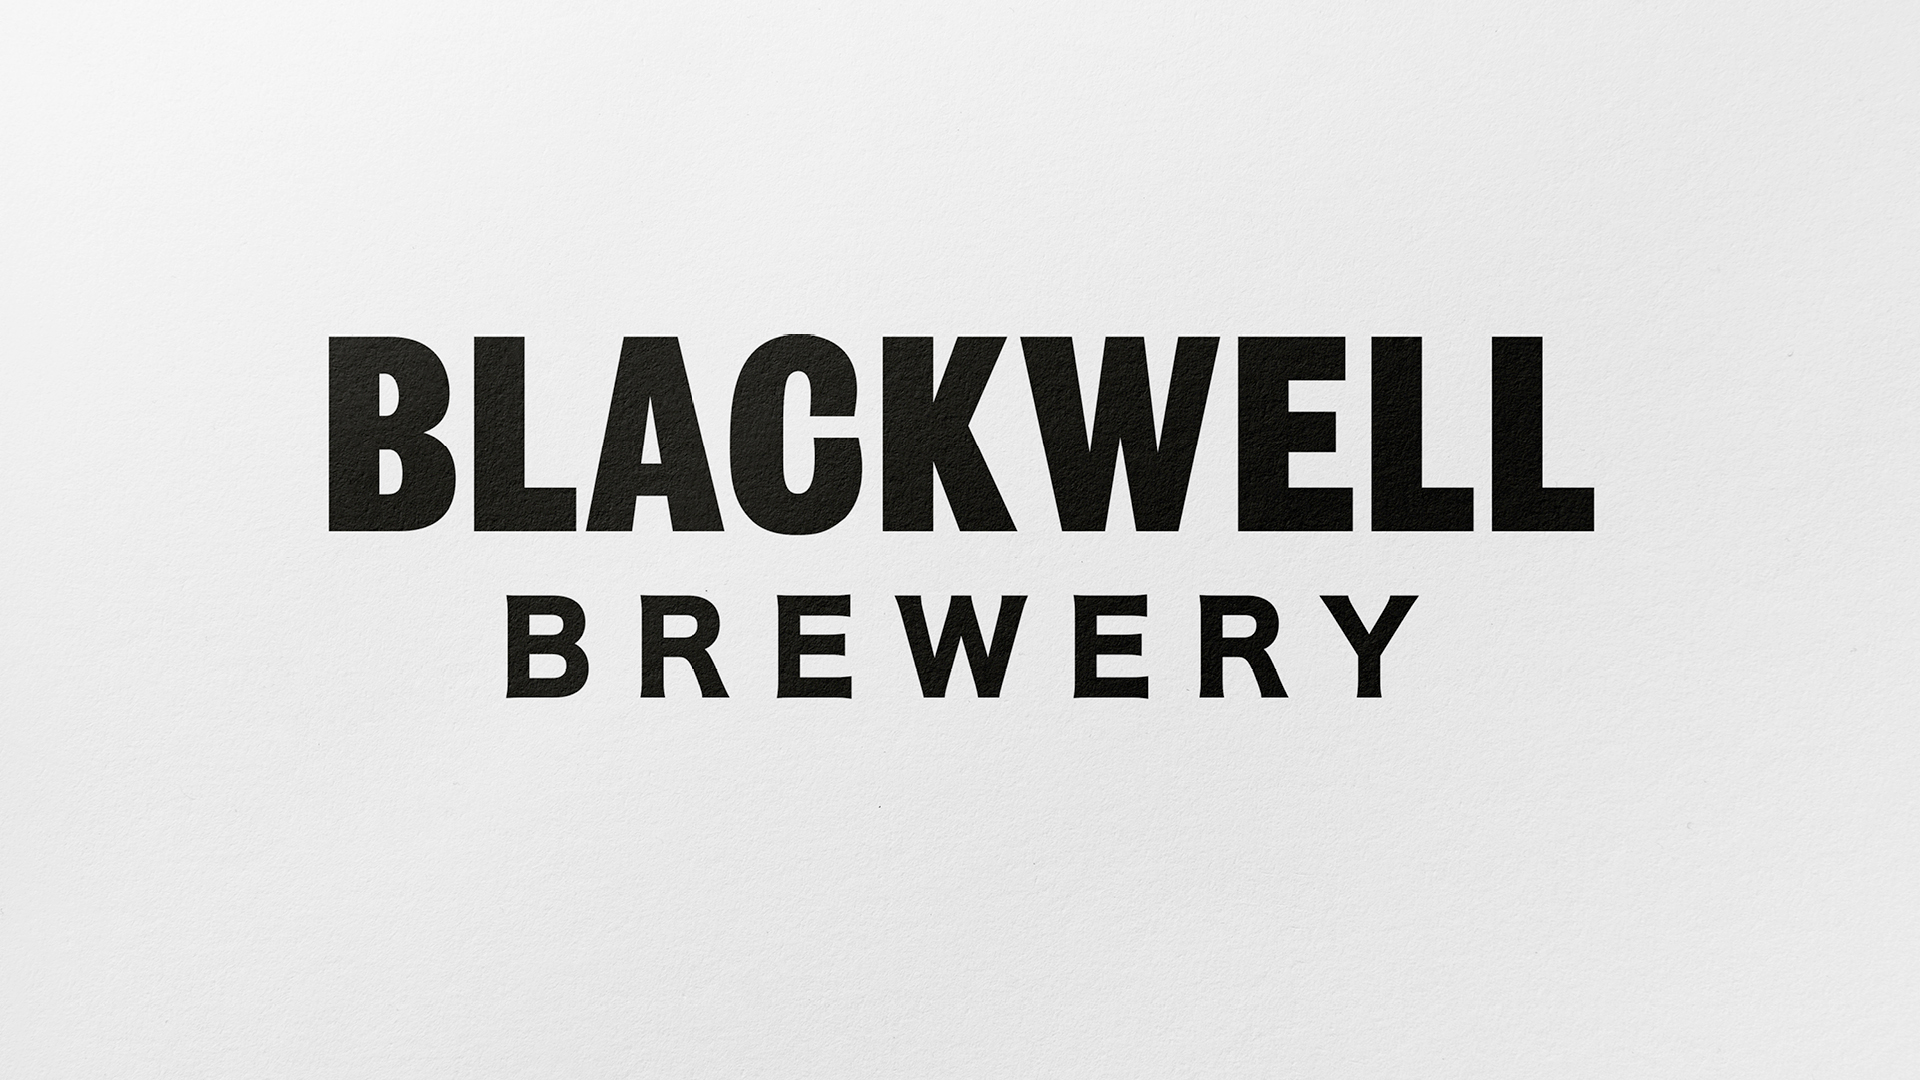 BLACKWELL BREWERY